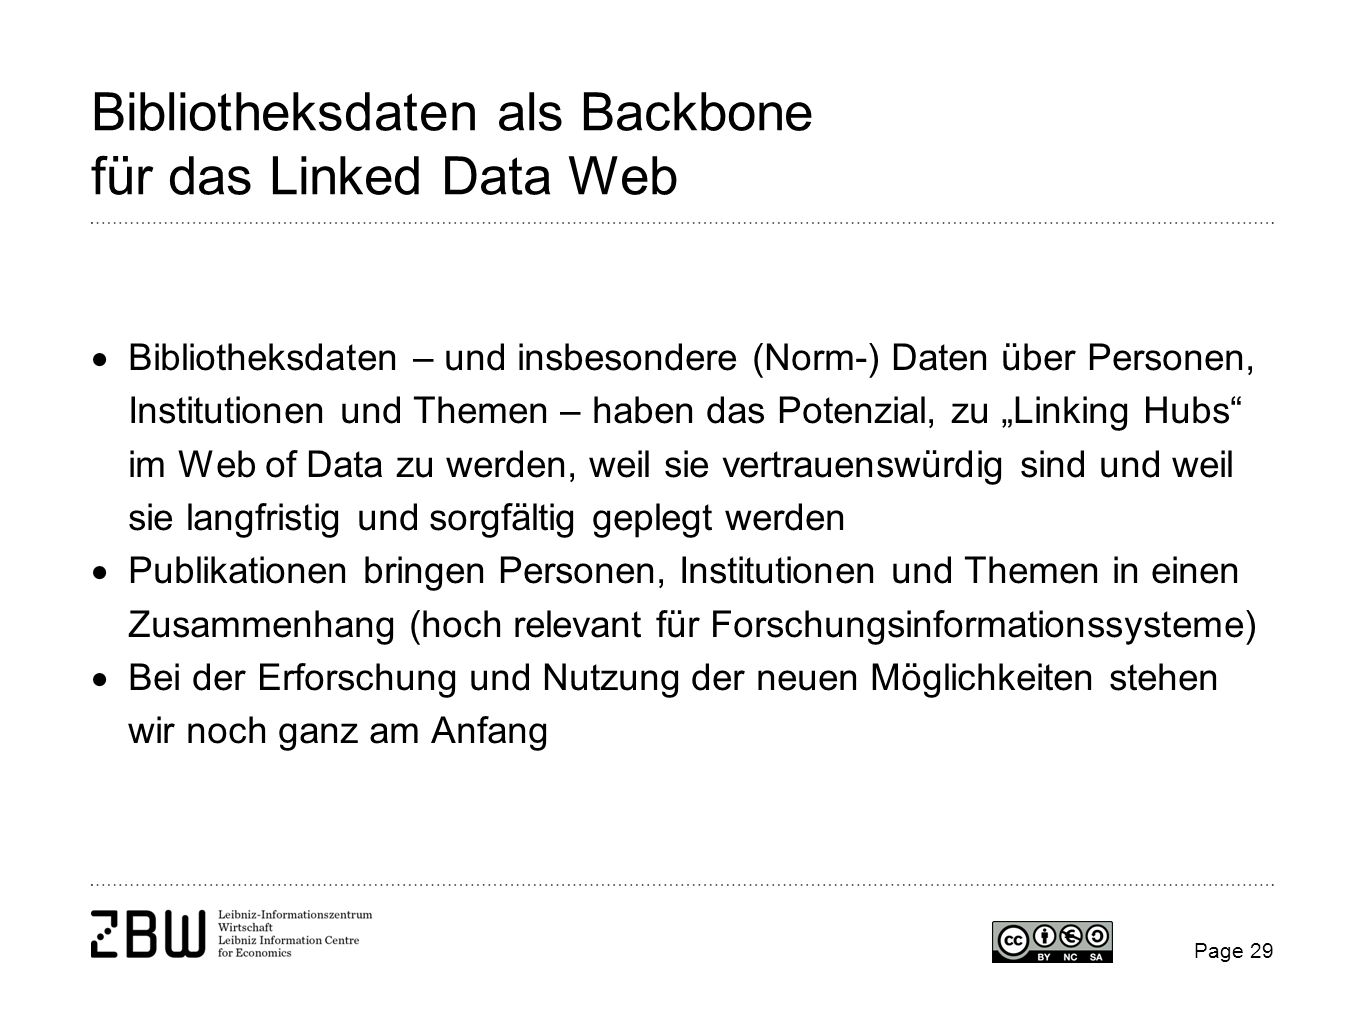 Bibliotheksdaten als Backbone für das Linked Data Web